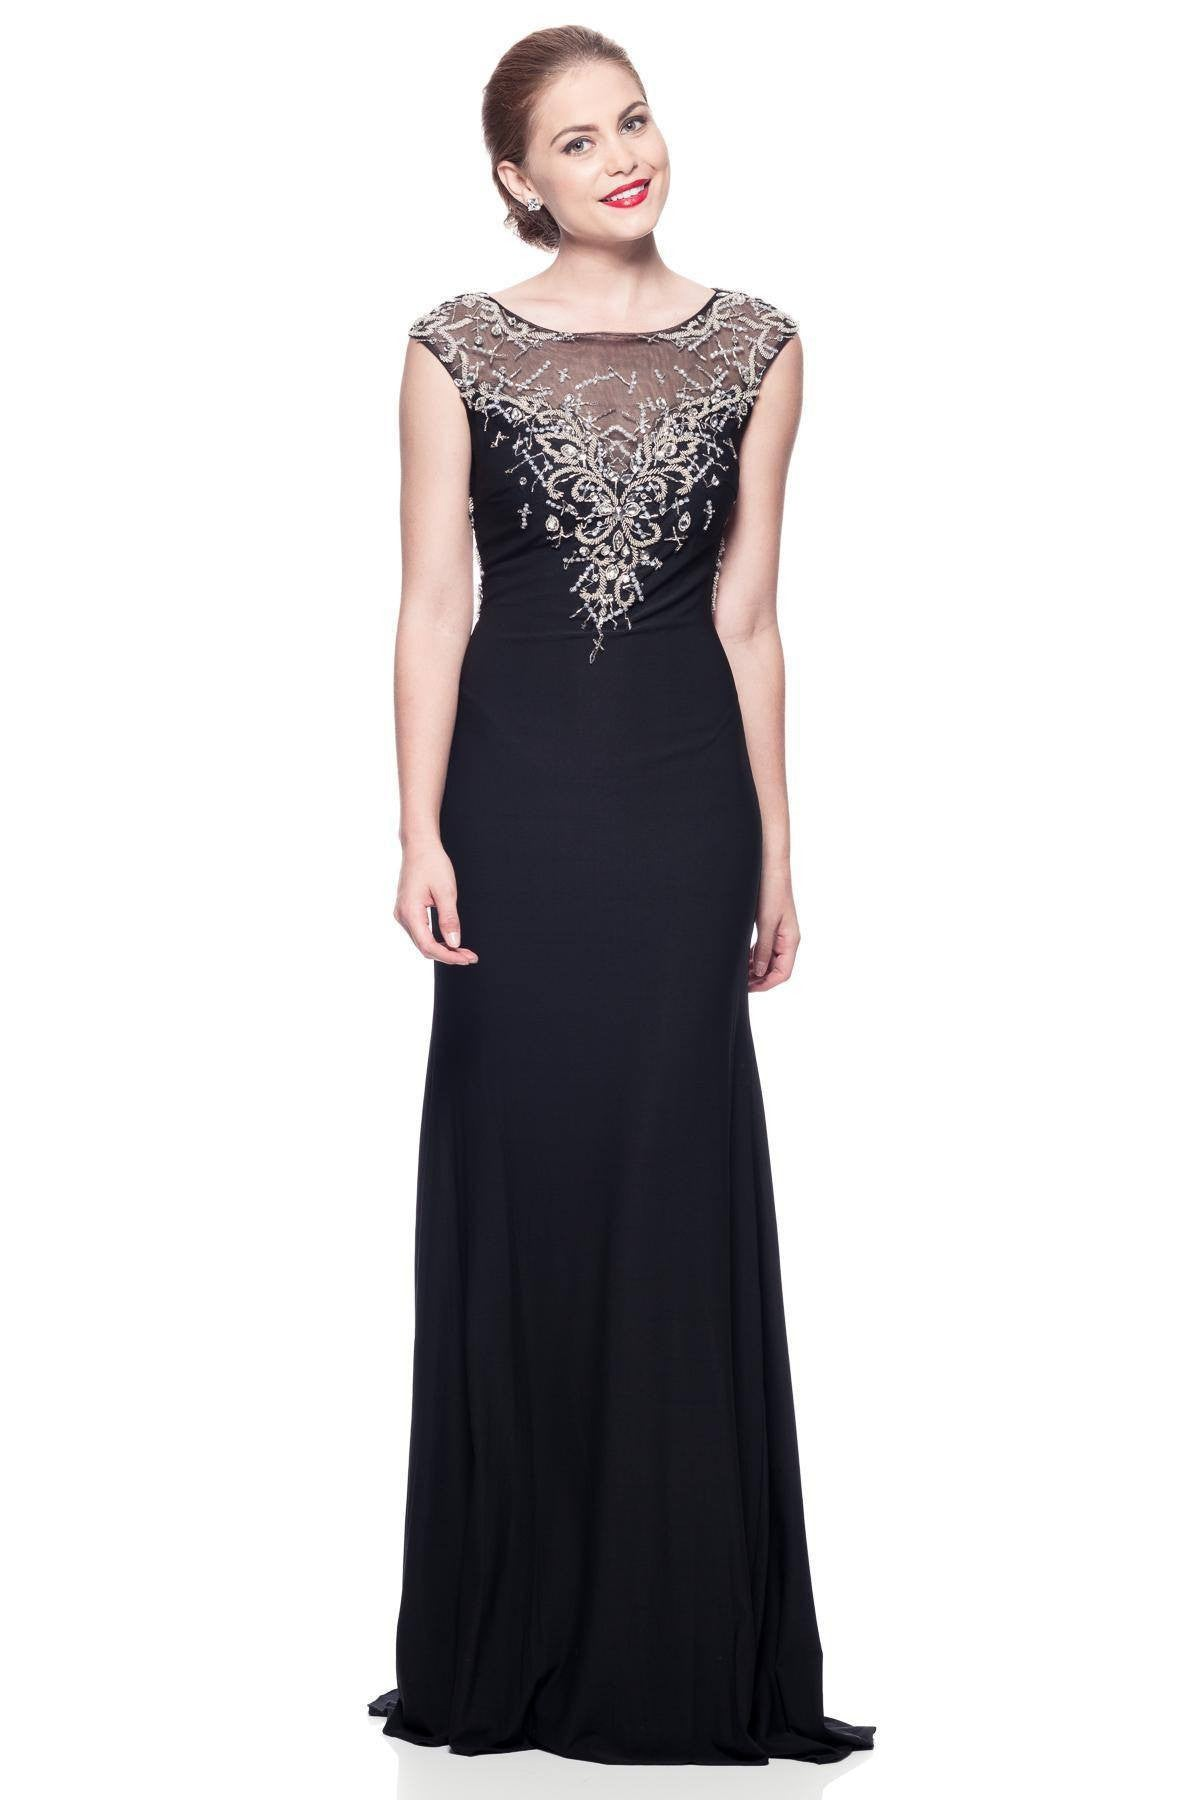 Black Tie Formal Dress Bcks735 Simply Fab Dress